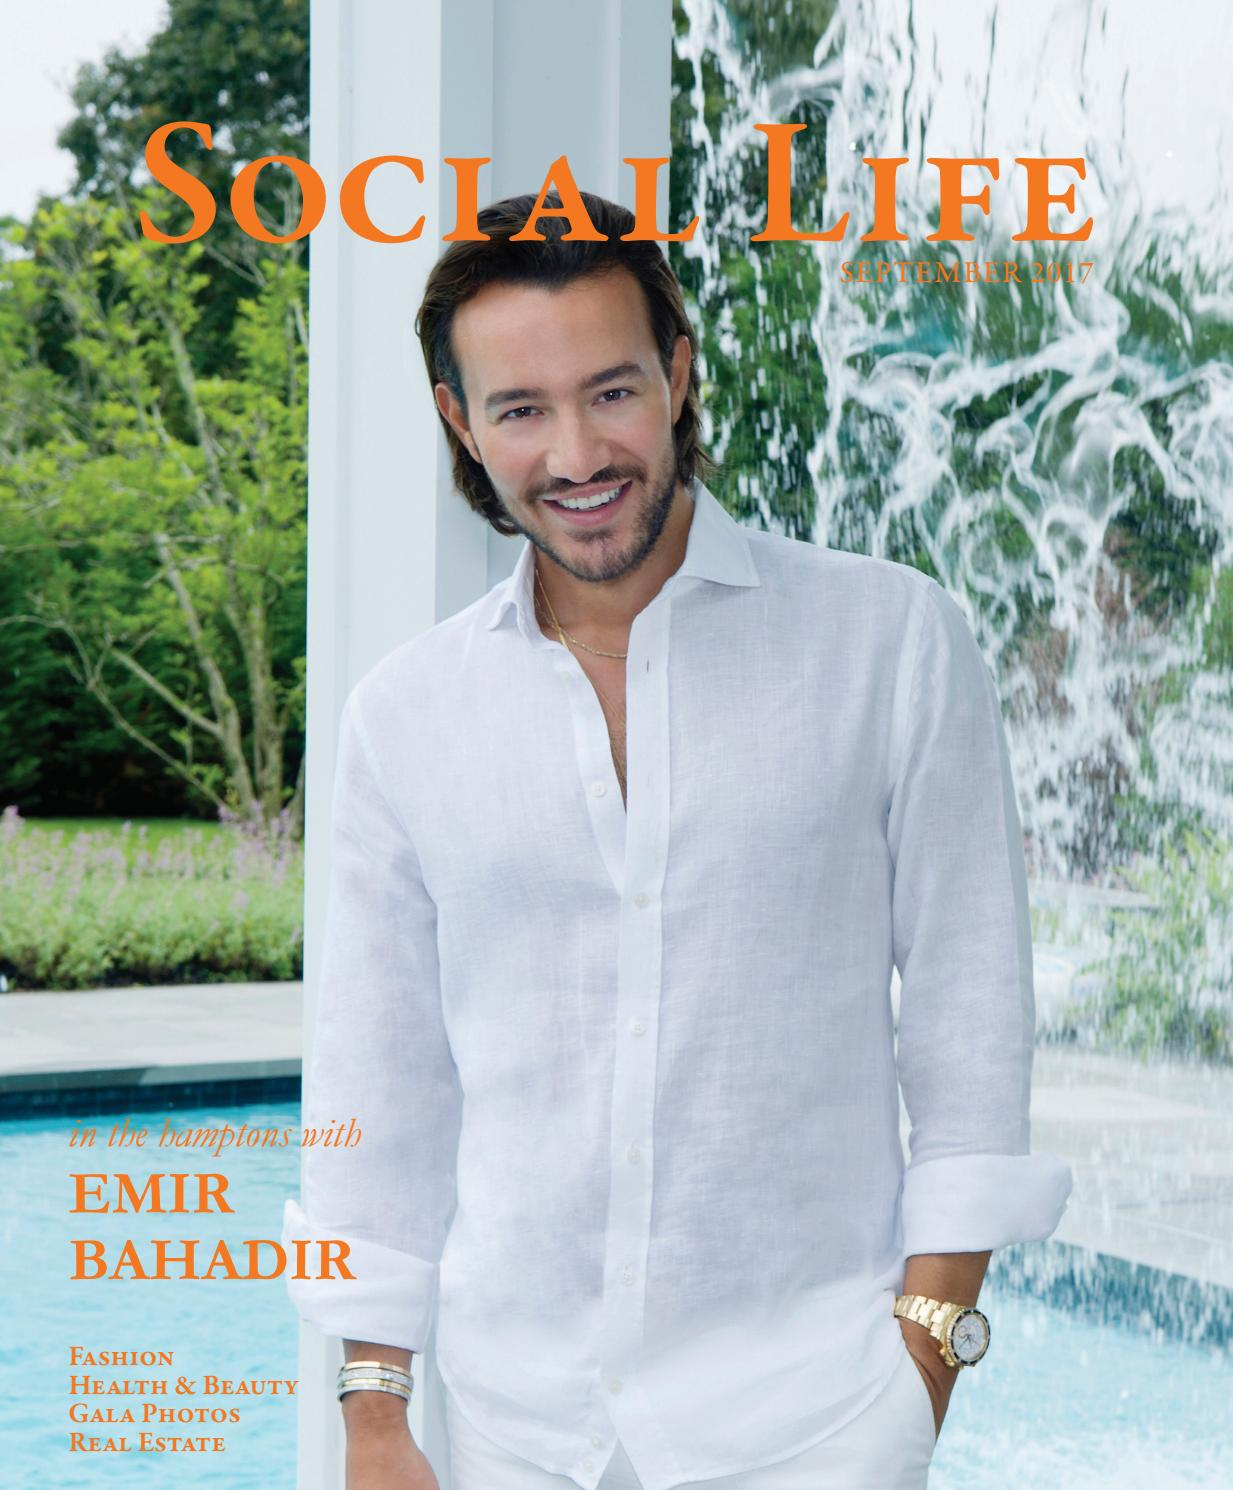 Social Life September 2017 Emir Bahadir By Magazine Doctor Dapper Hair Mud Gold 100 Gr Issuu